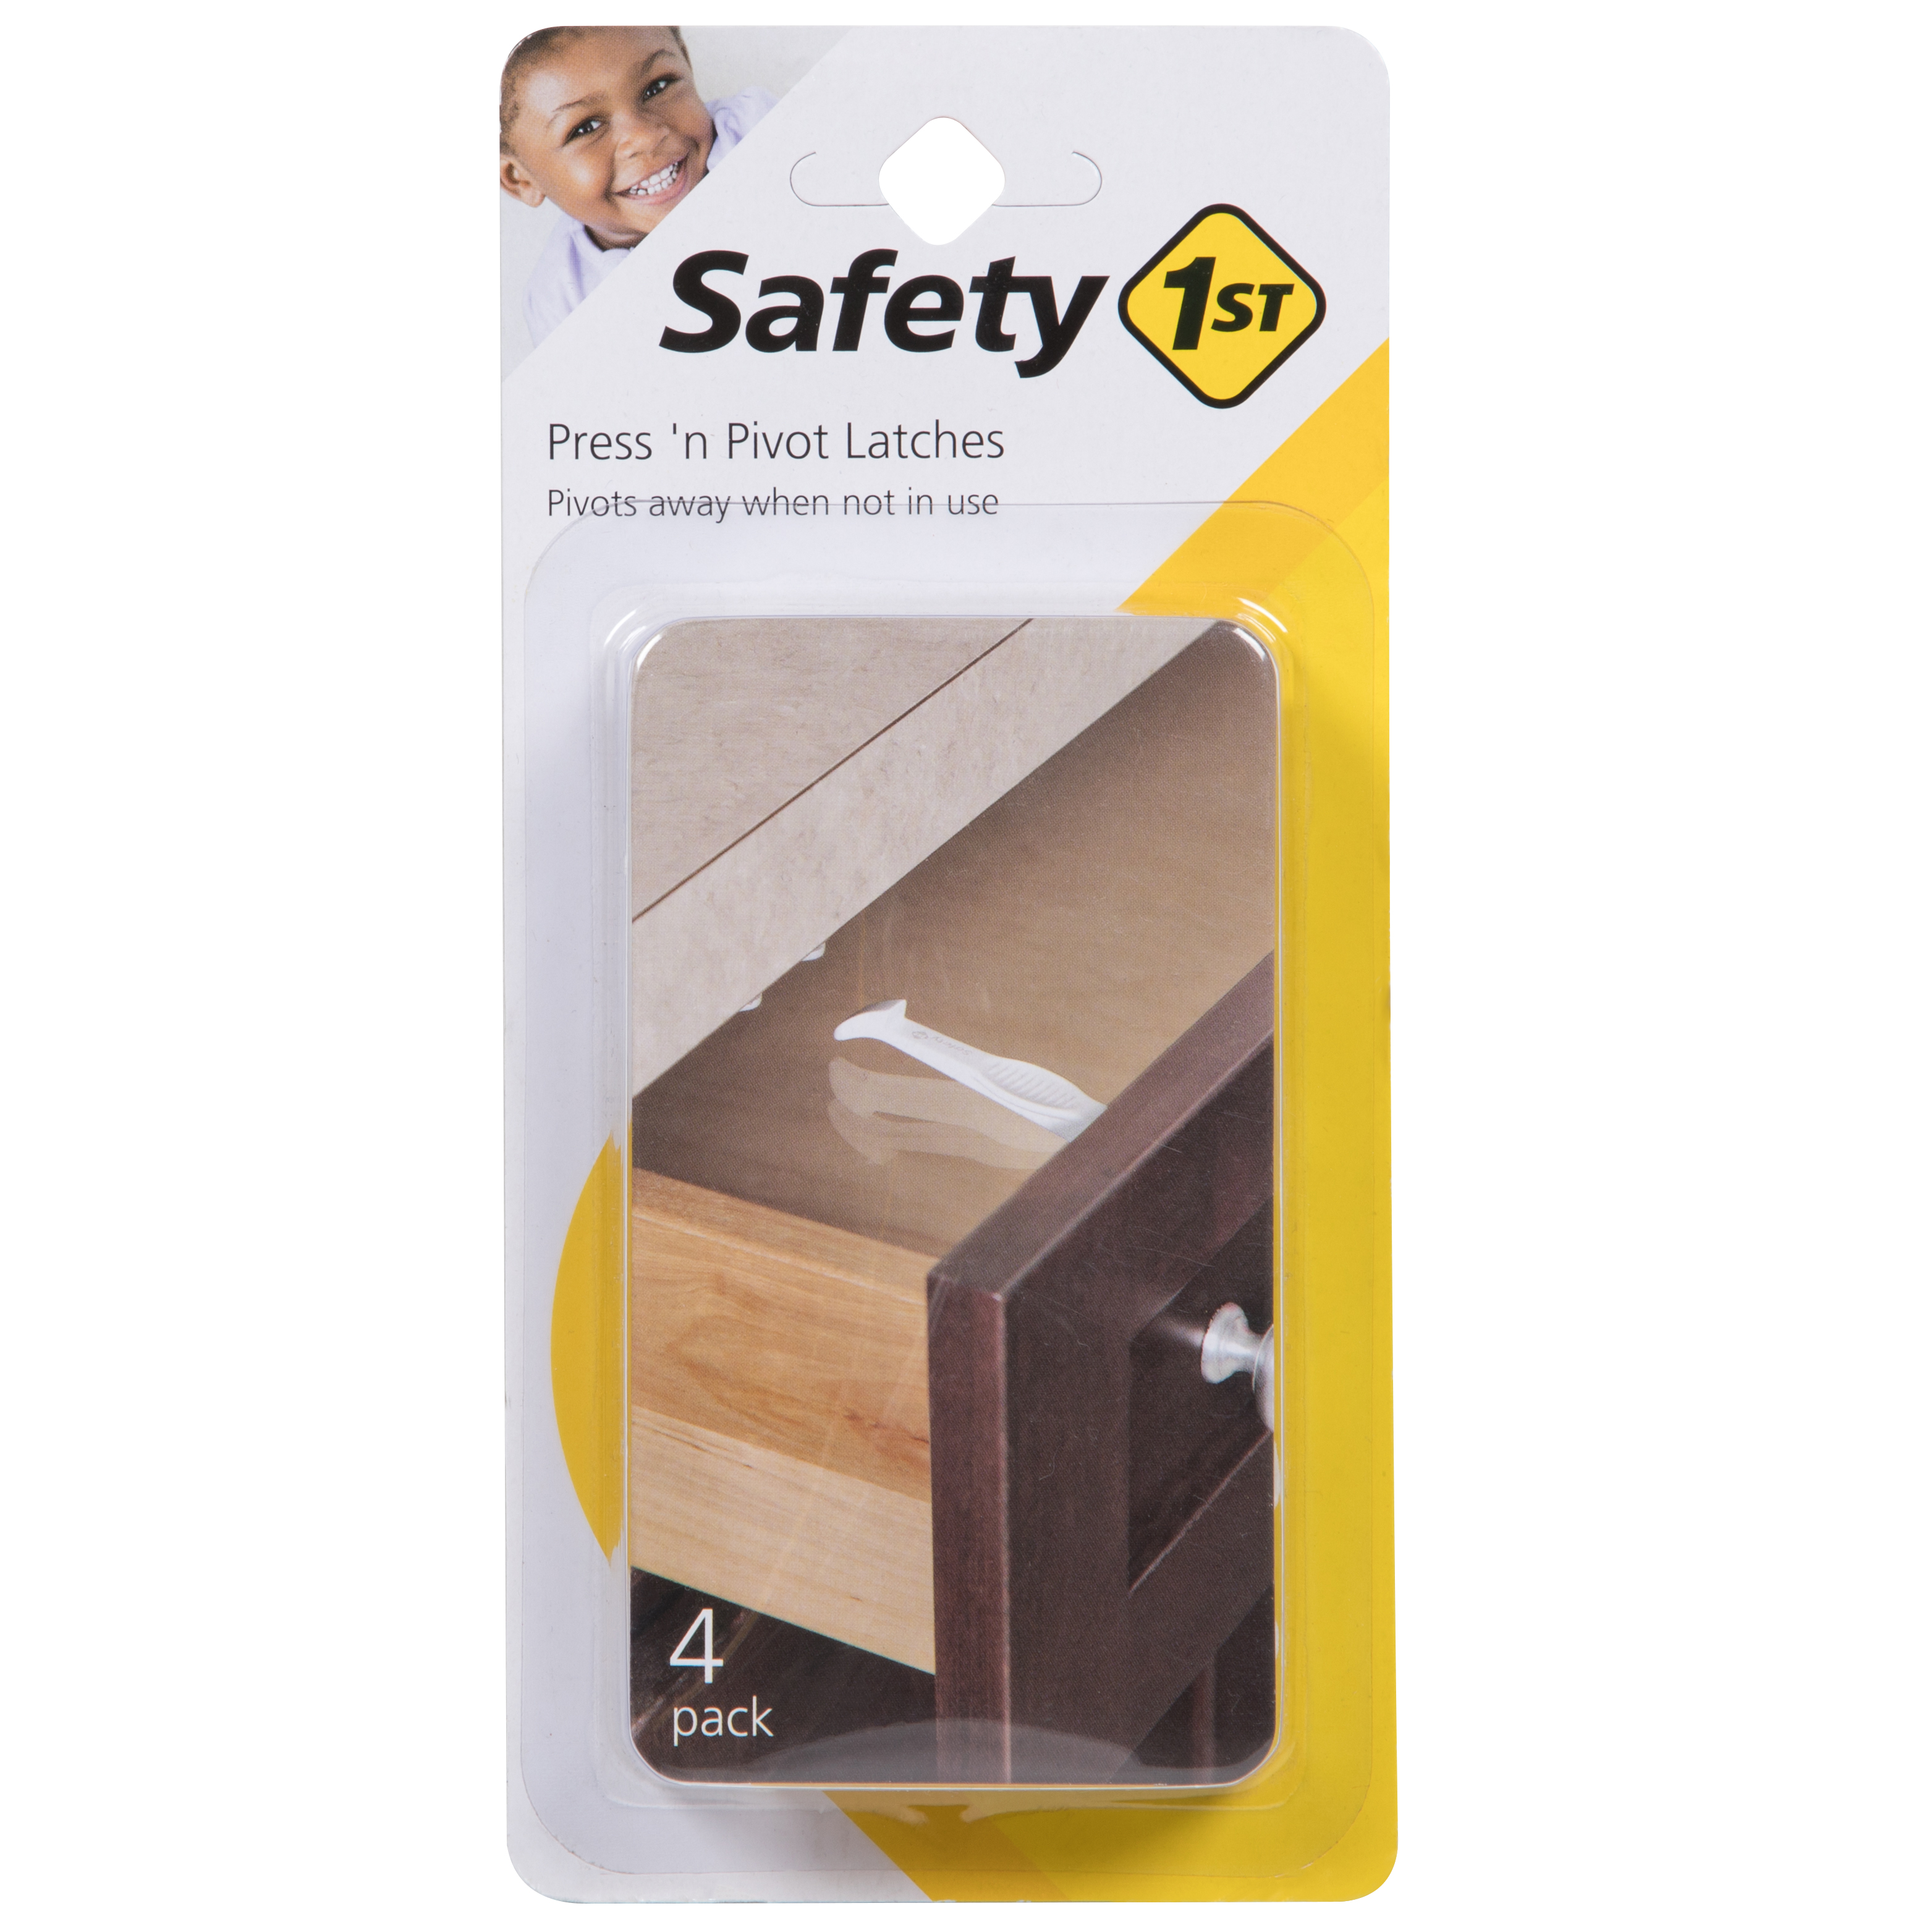 Safety 1st Easy To Grip Press 'n Pivot Latch, White